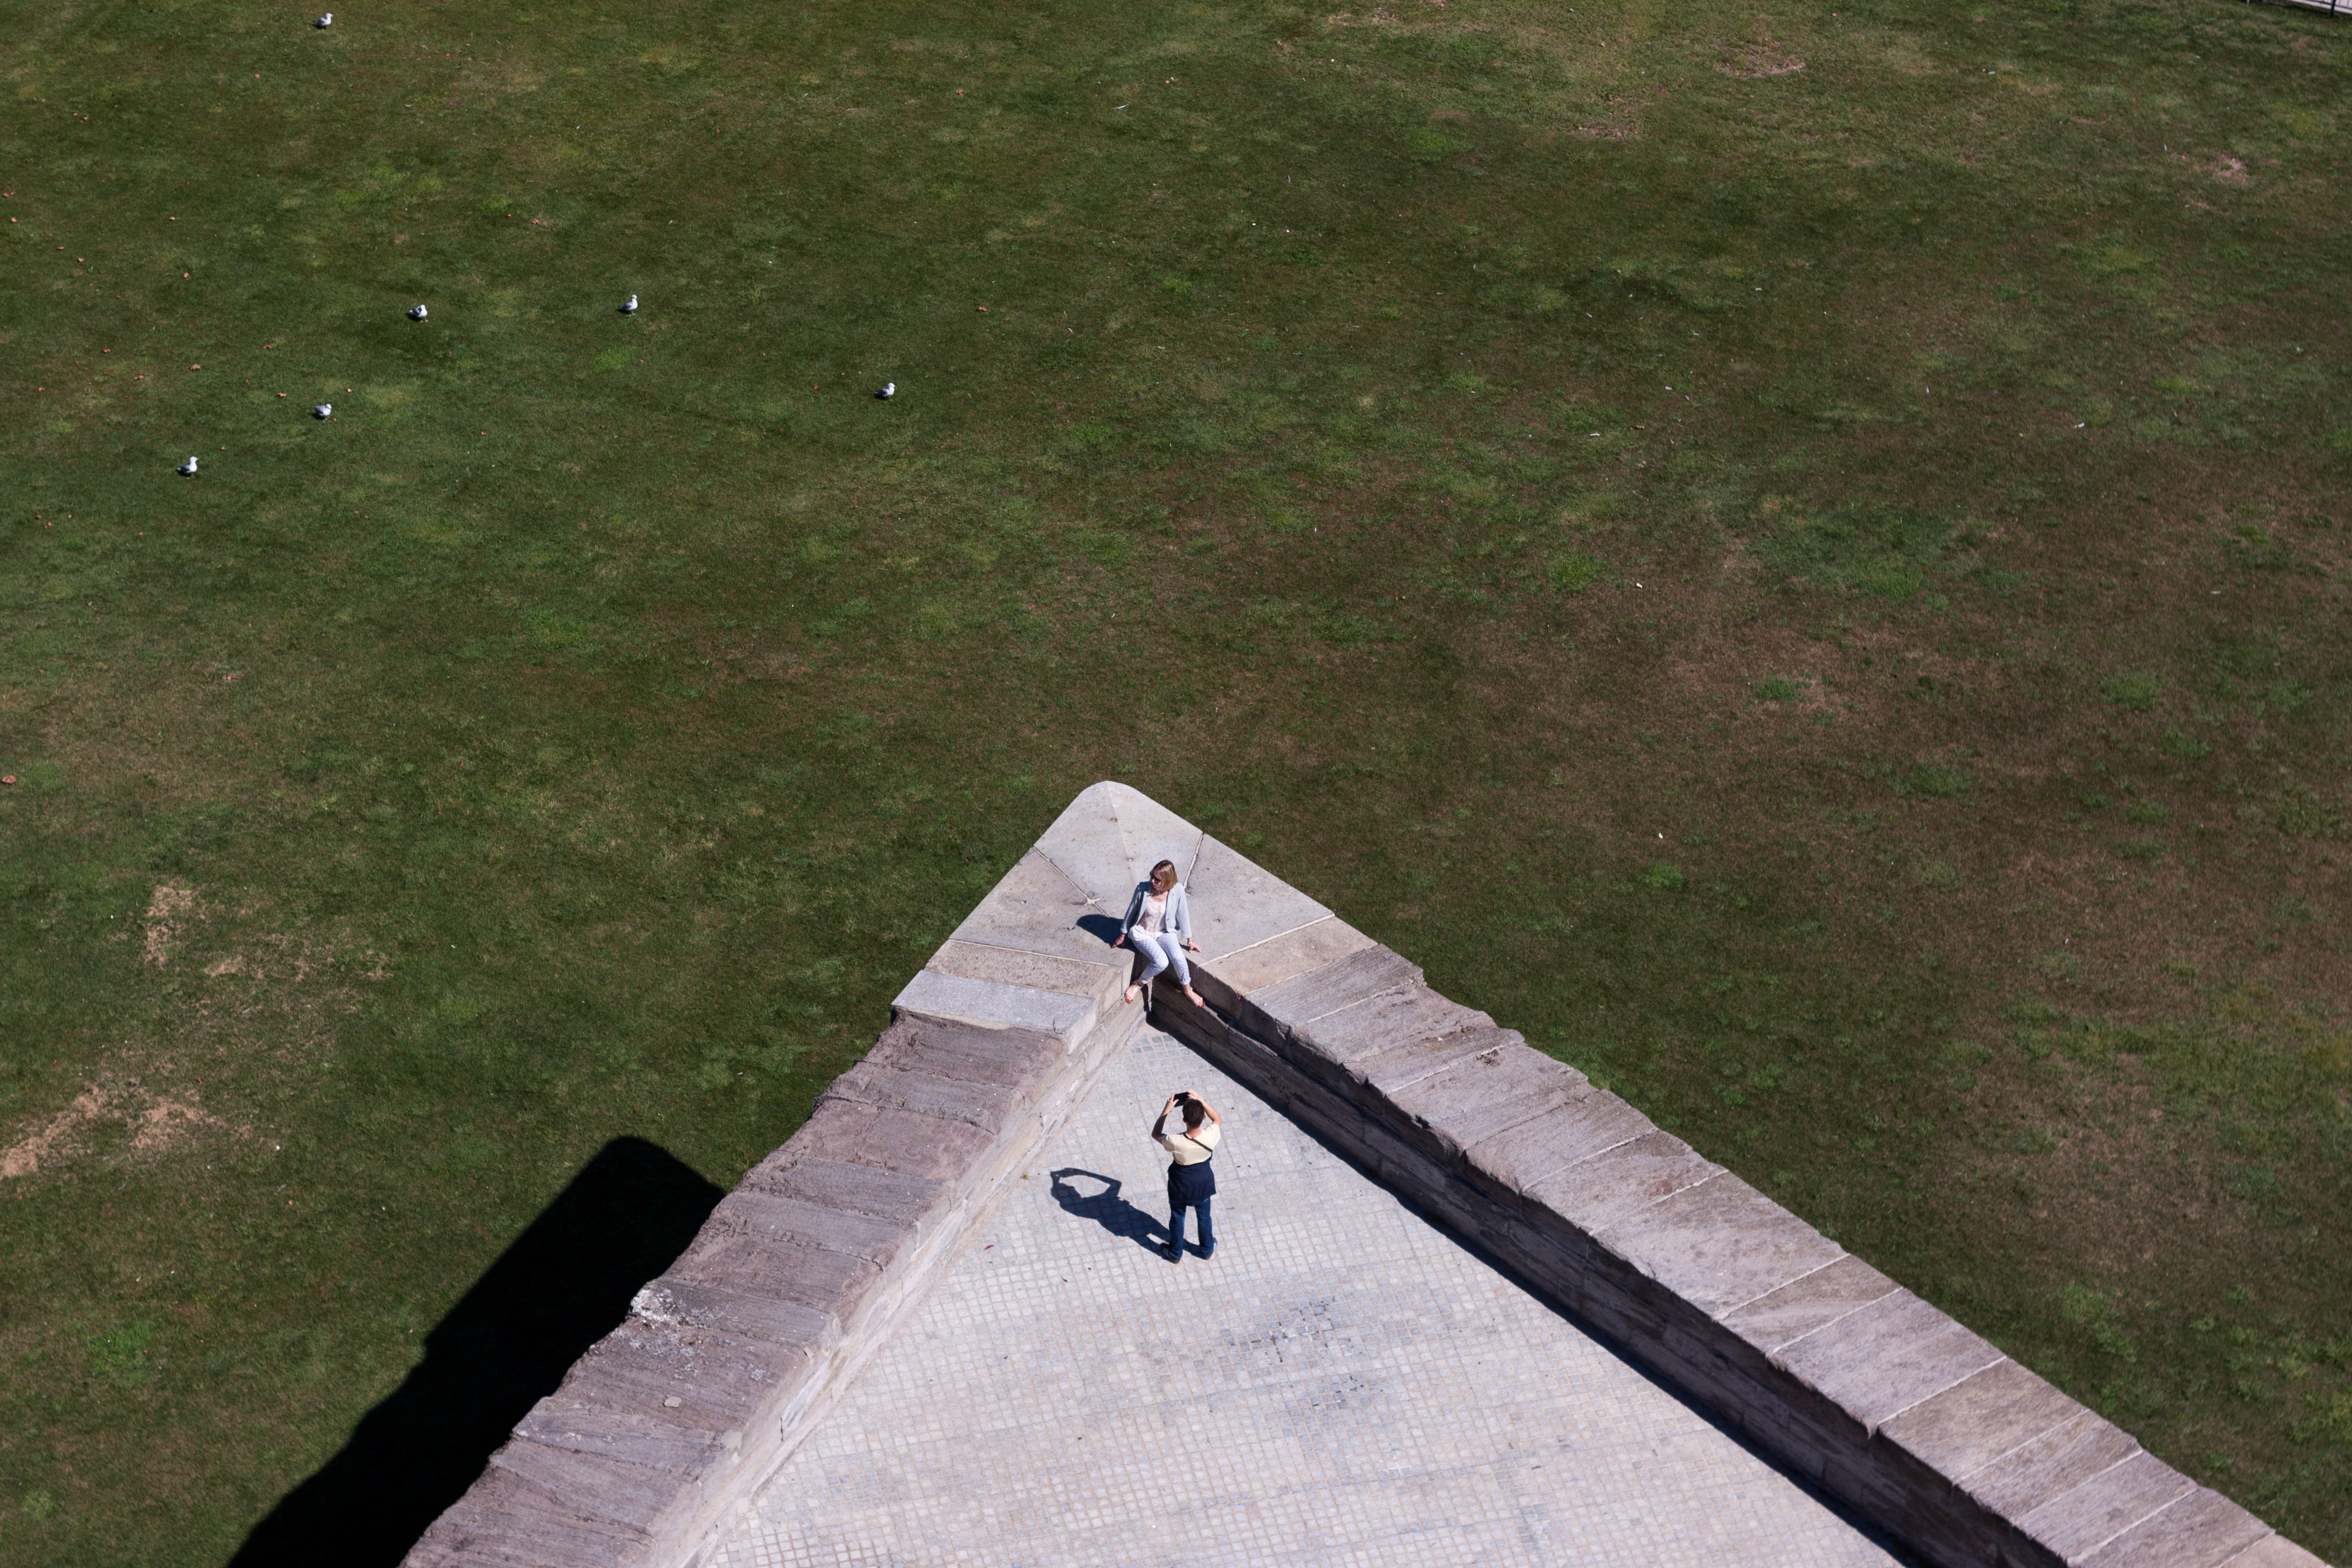 aerial photo of two person taking photo on top of building